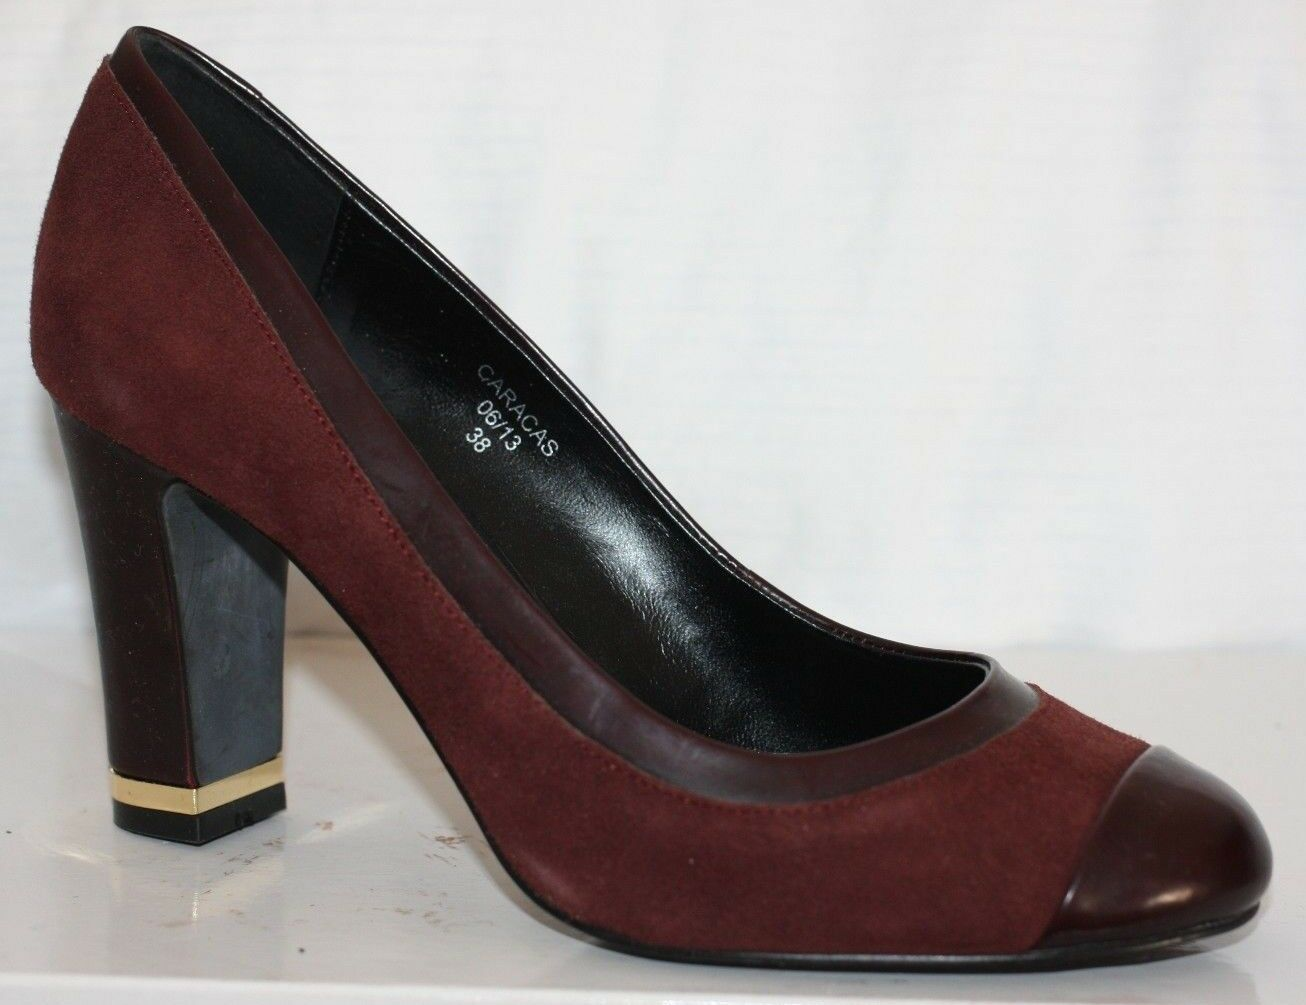 JONES Burgundy WINE LEATHER SUEDE Patent Court shoes SMART BLOCK HEEL 5 38 OFFICE